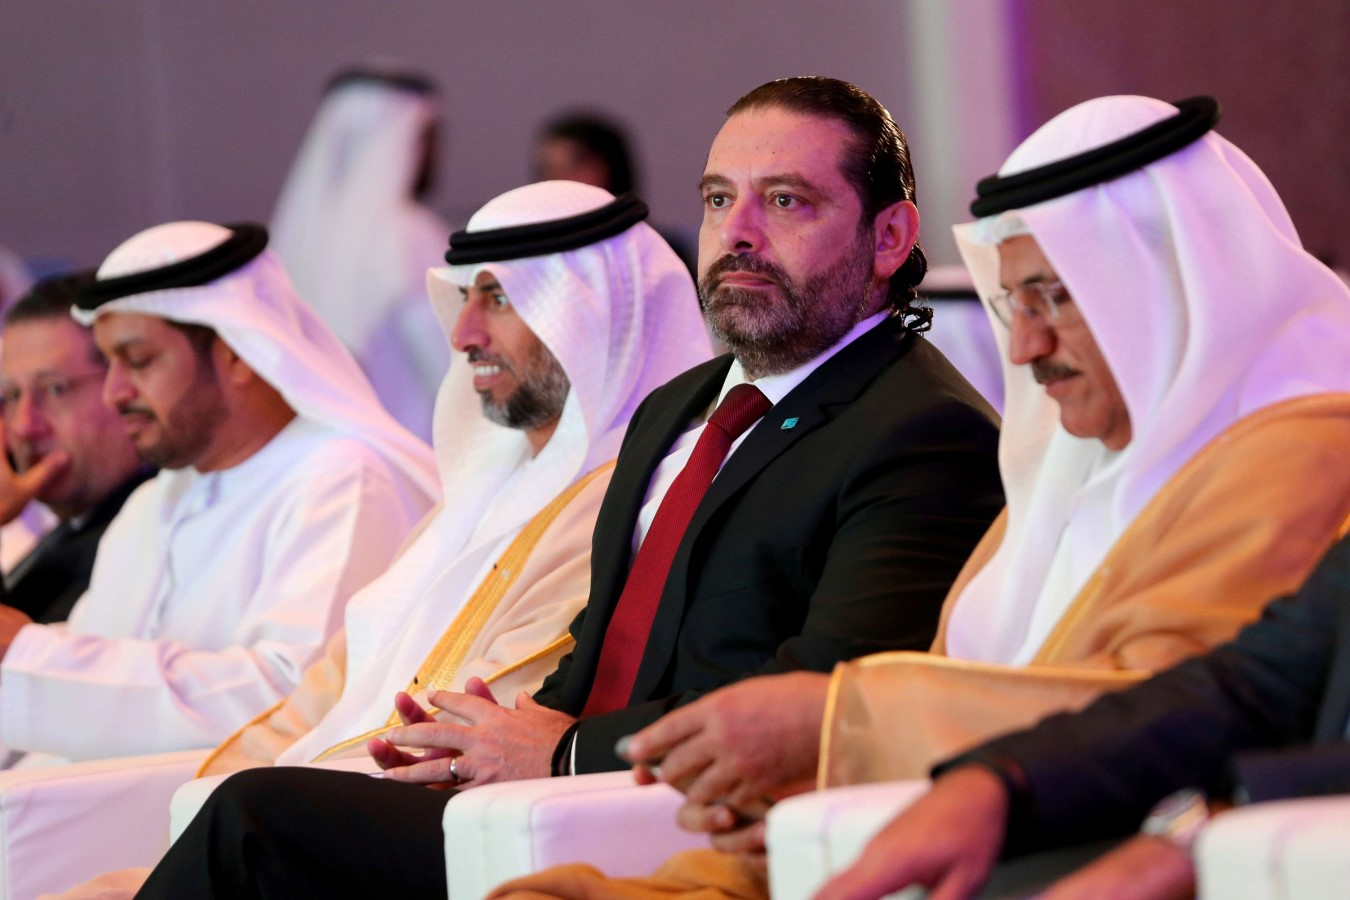 Lebanese Prime Minister Saad Hariri attends the UAE-Lebanon Investment Forum in Abu Dhabi, UAE, October 7. (Reuters)